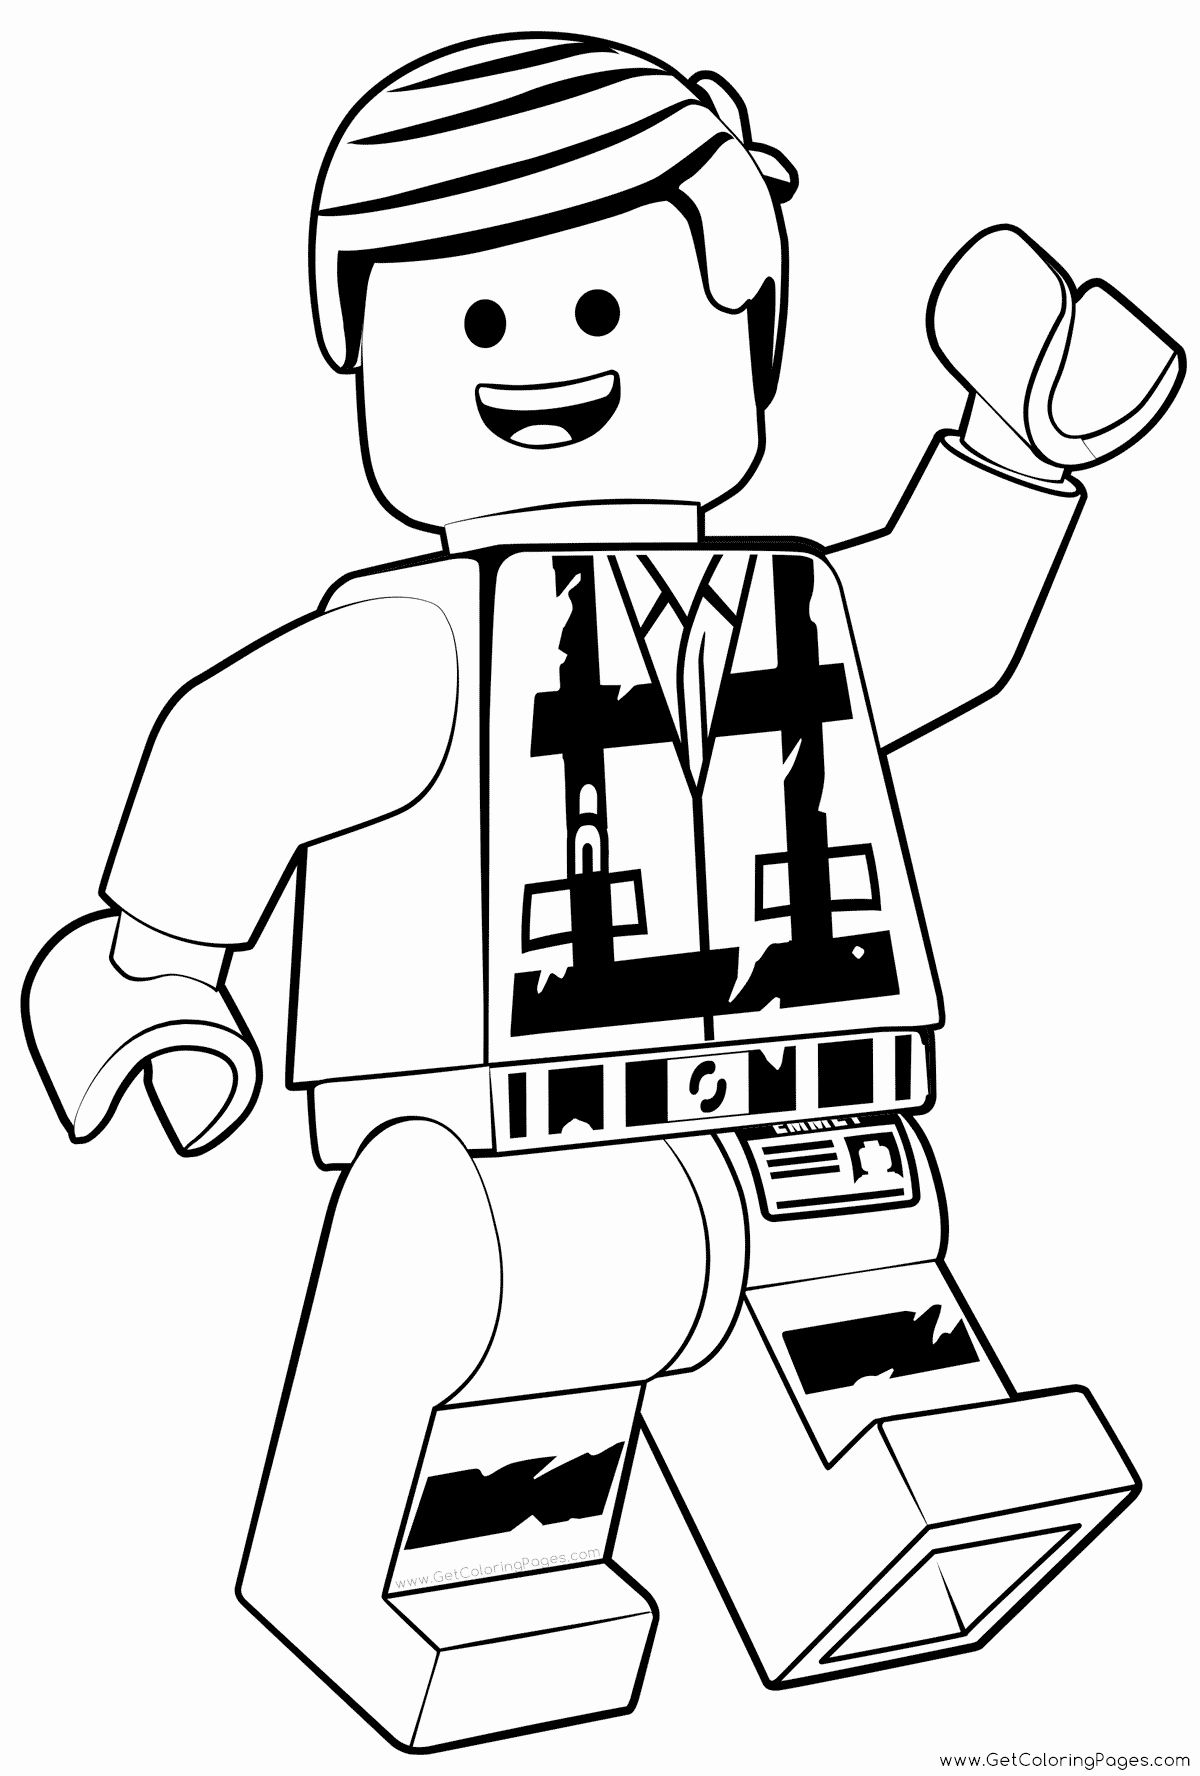 Lego Coloring Activities Fresh Emmet Lego Coloring Pages